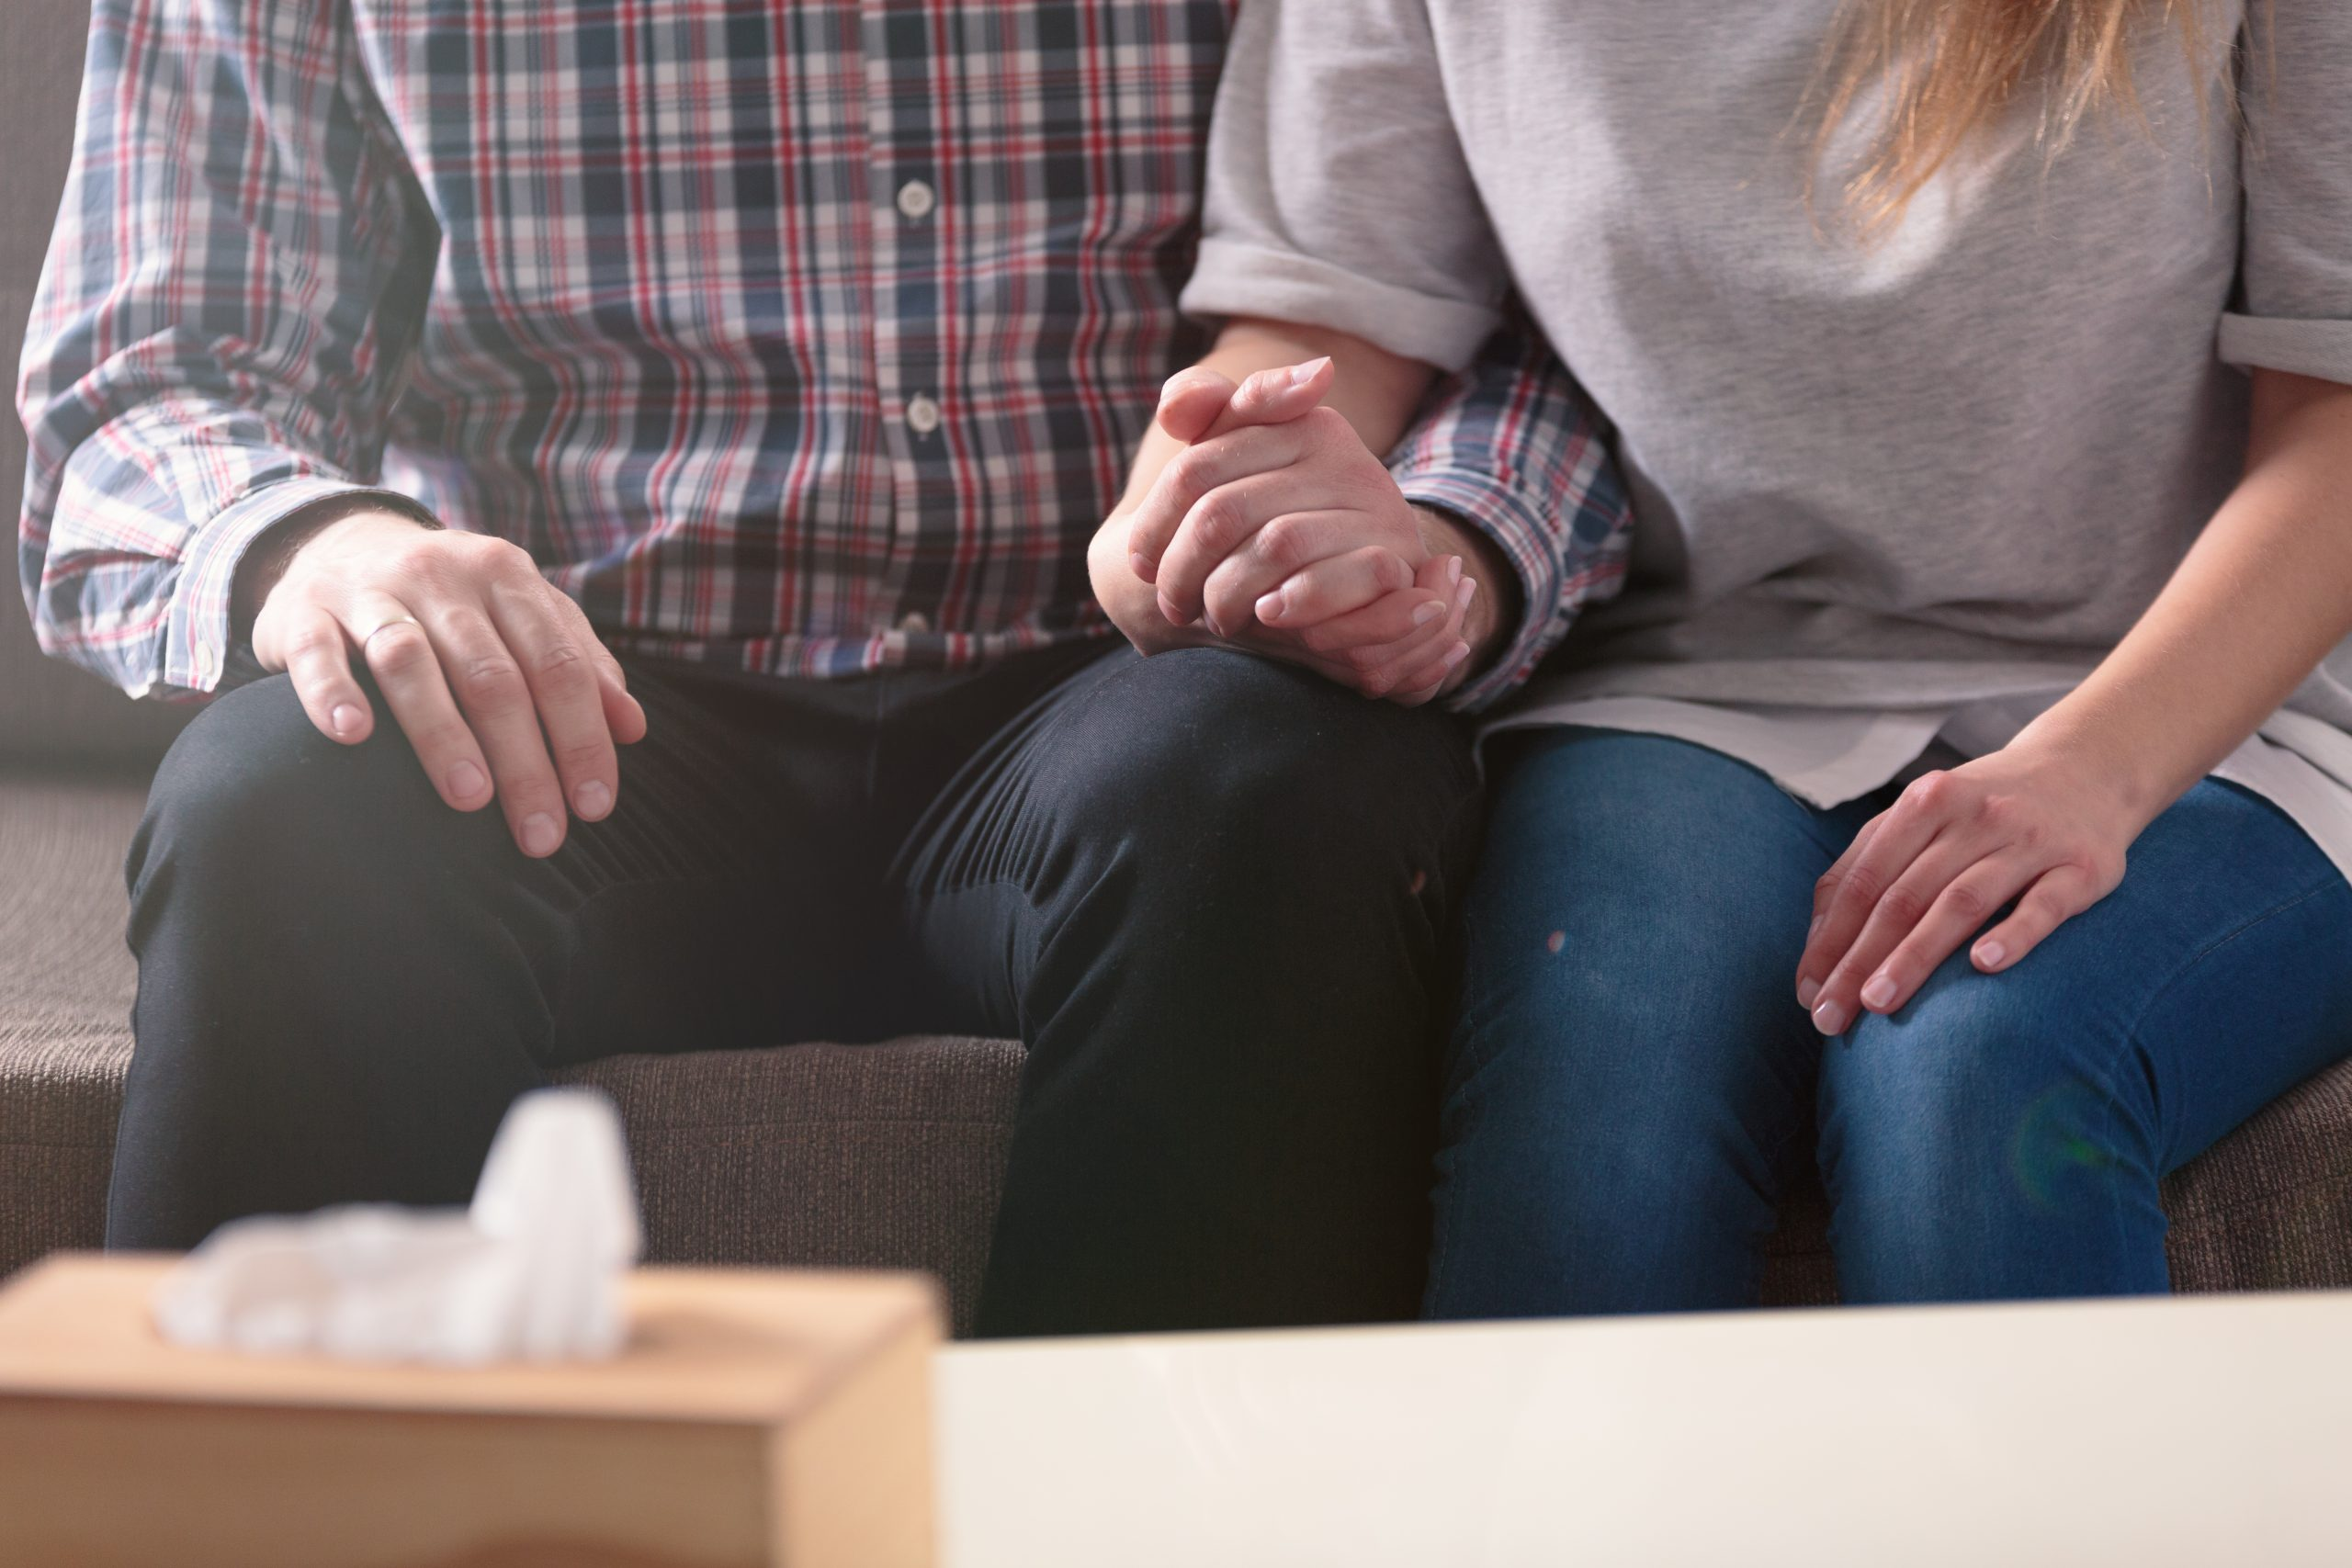 Can marriage counselling benefit happy couples?